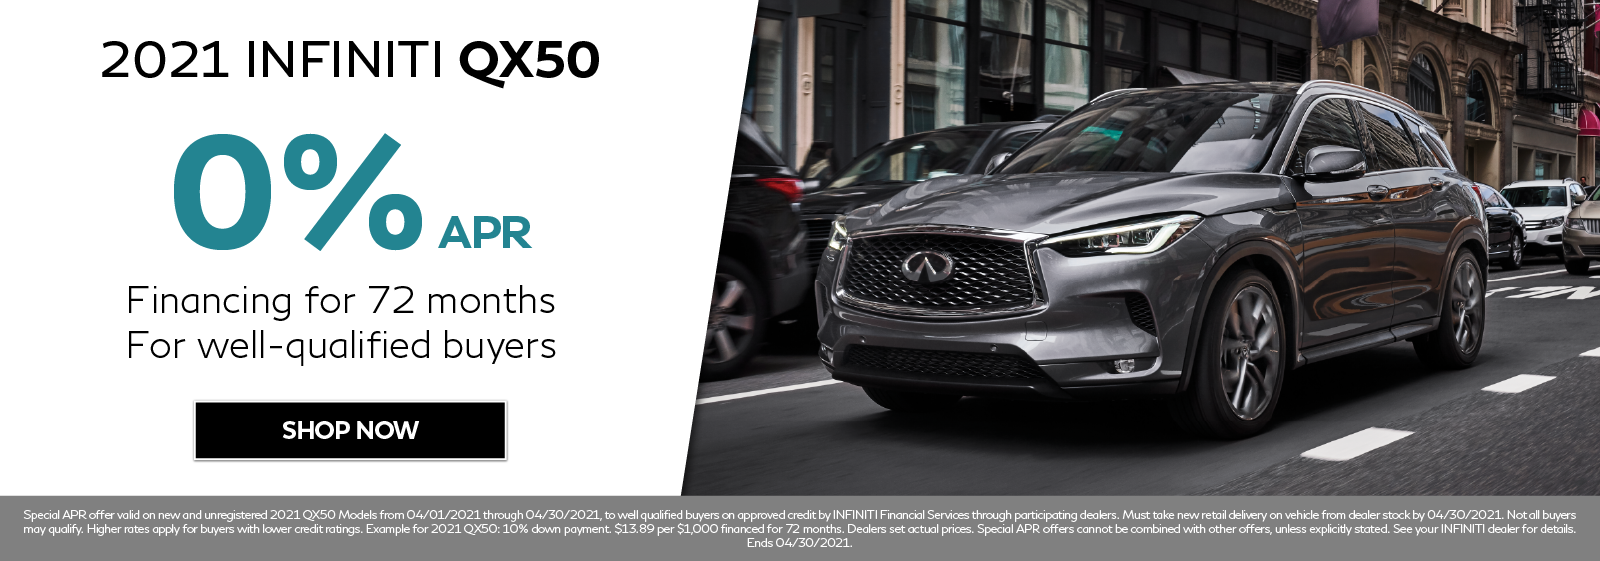 0% APR on new 2021 INFINITI QX50. Click to shop now.